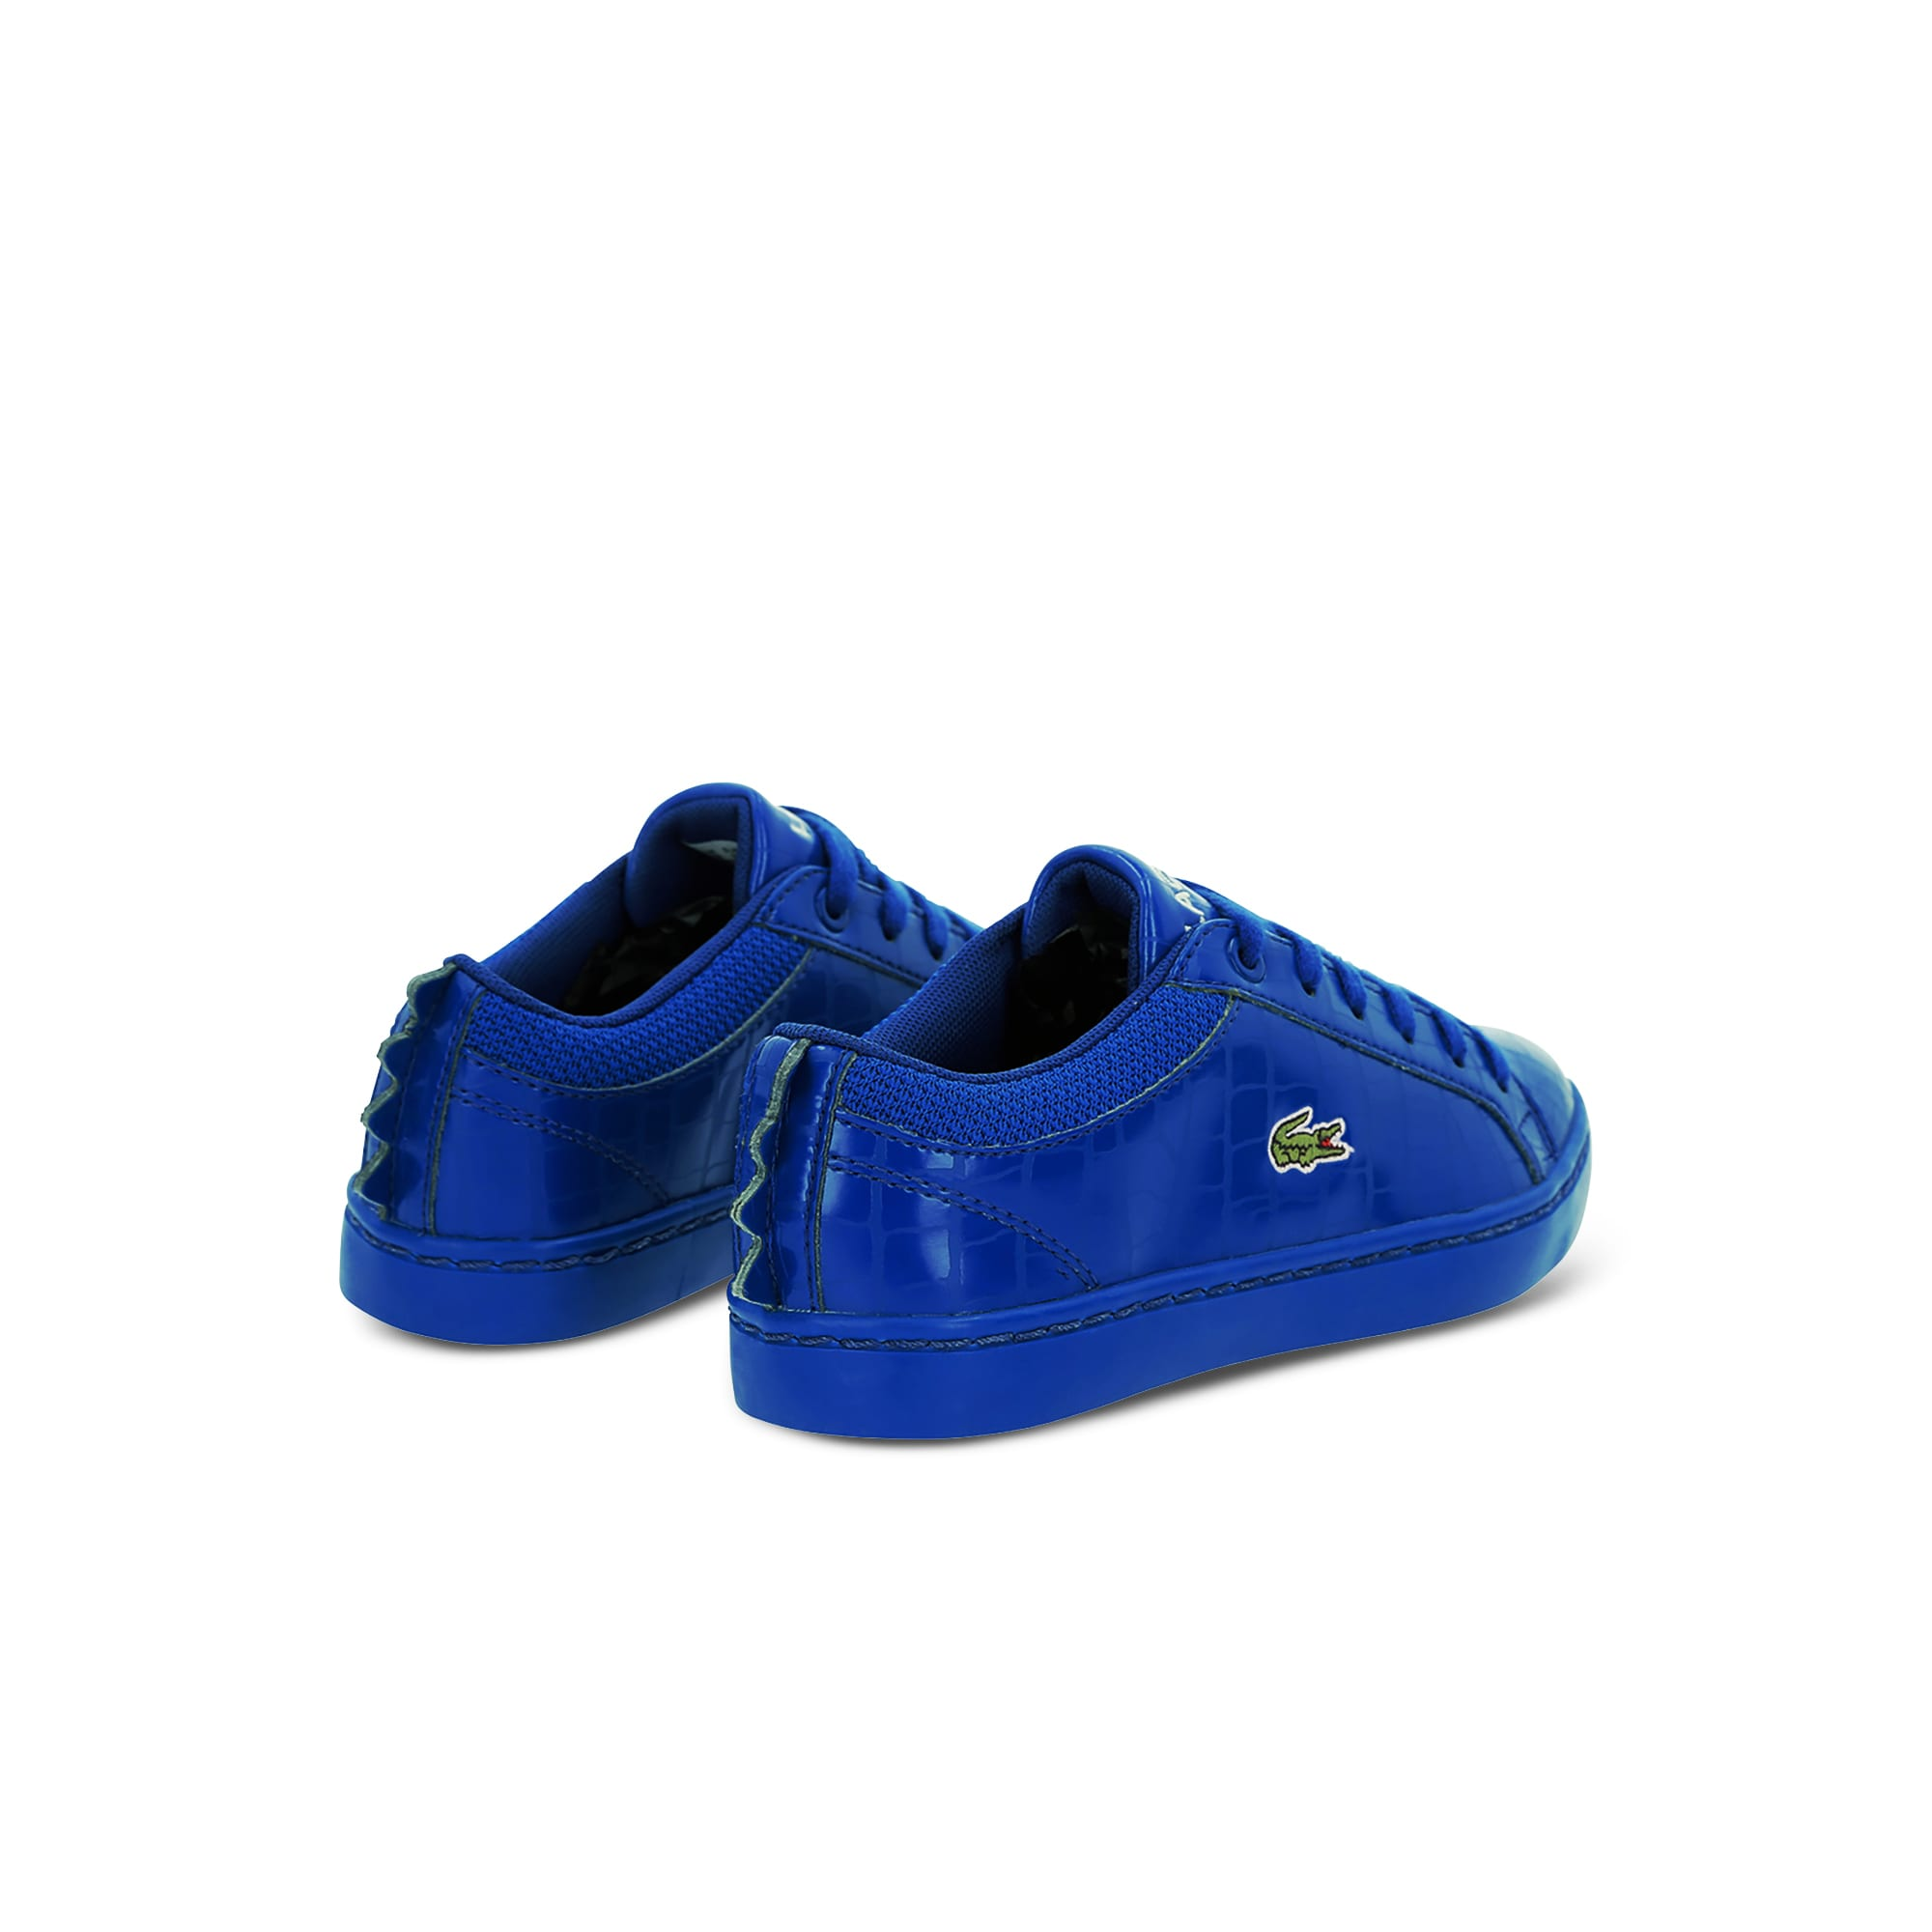 Children's Straightset Synthetic Crocodile SkinTrainers